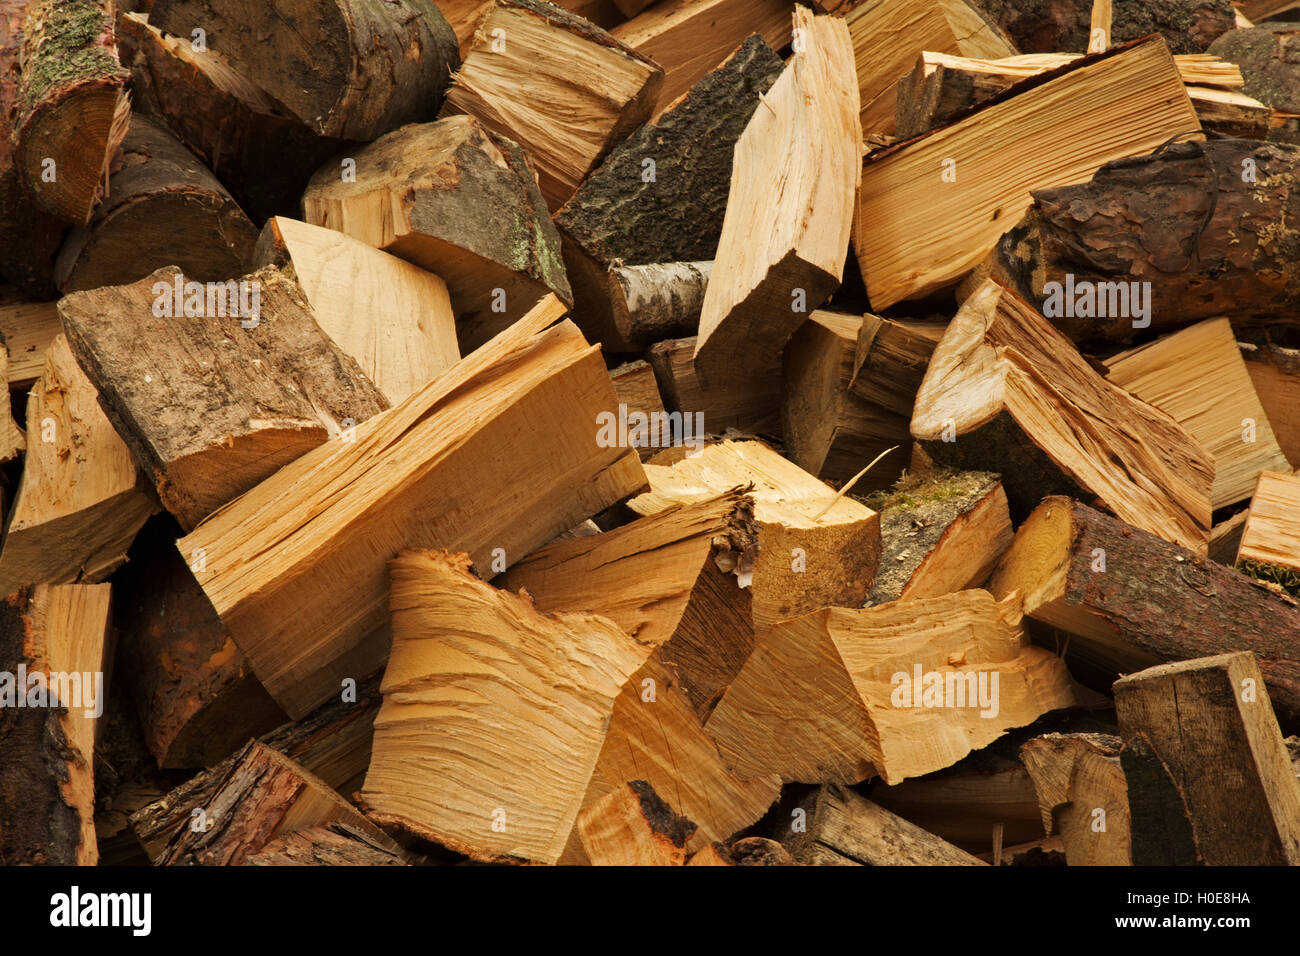 large cut pieces of pine and birch firewood for the fireplace